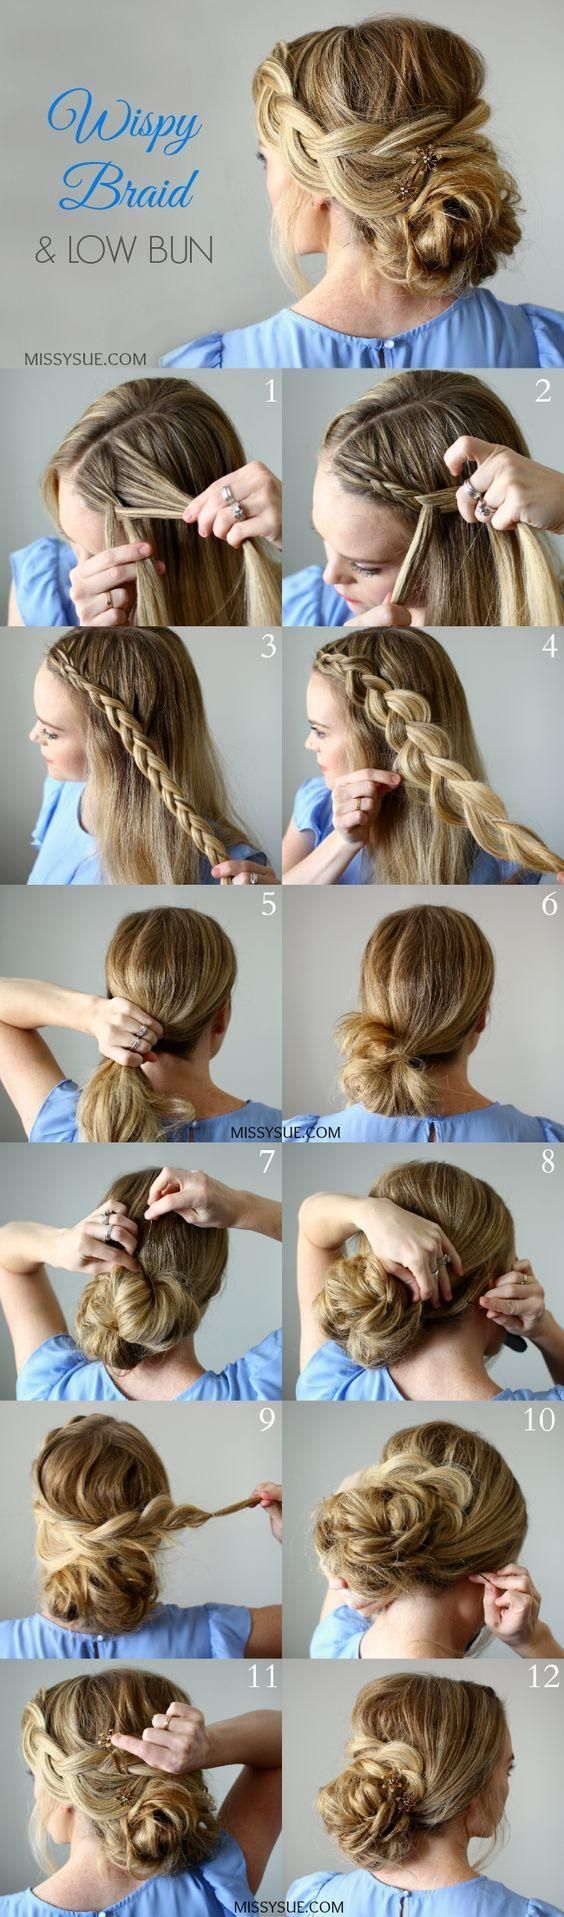 best Beauty tutorials images on Pinterest Hair ideas Hairstyle